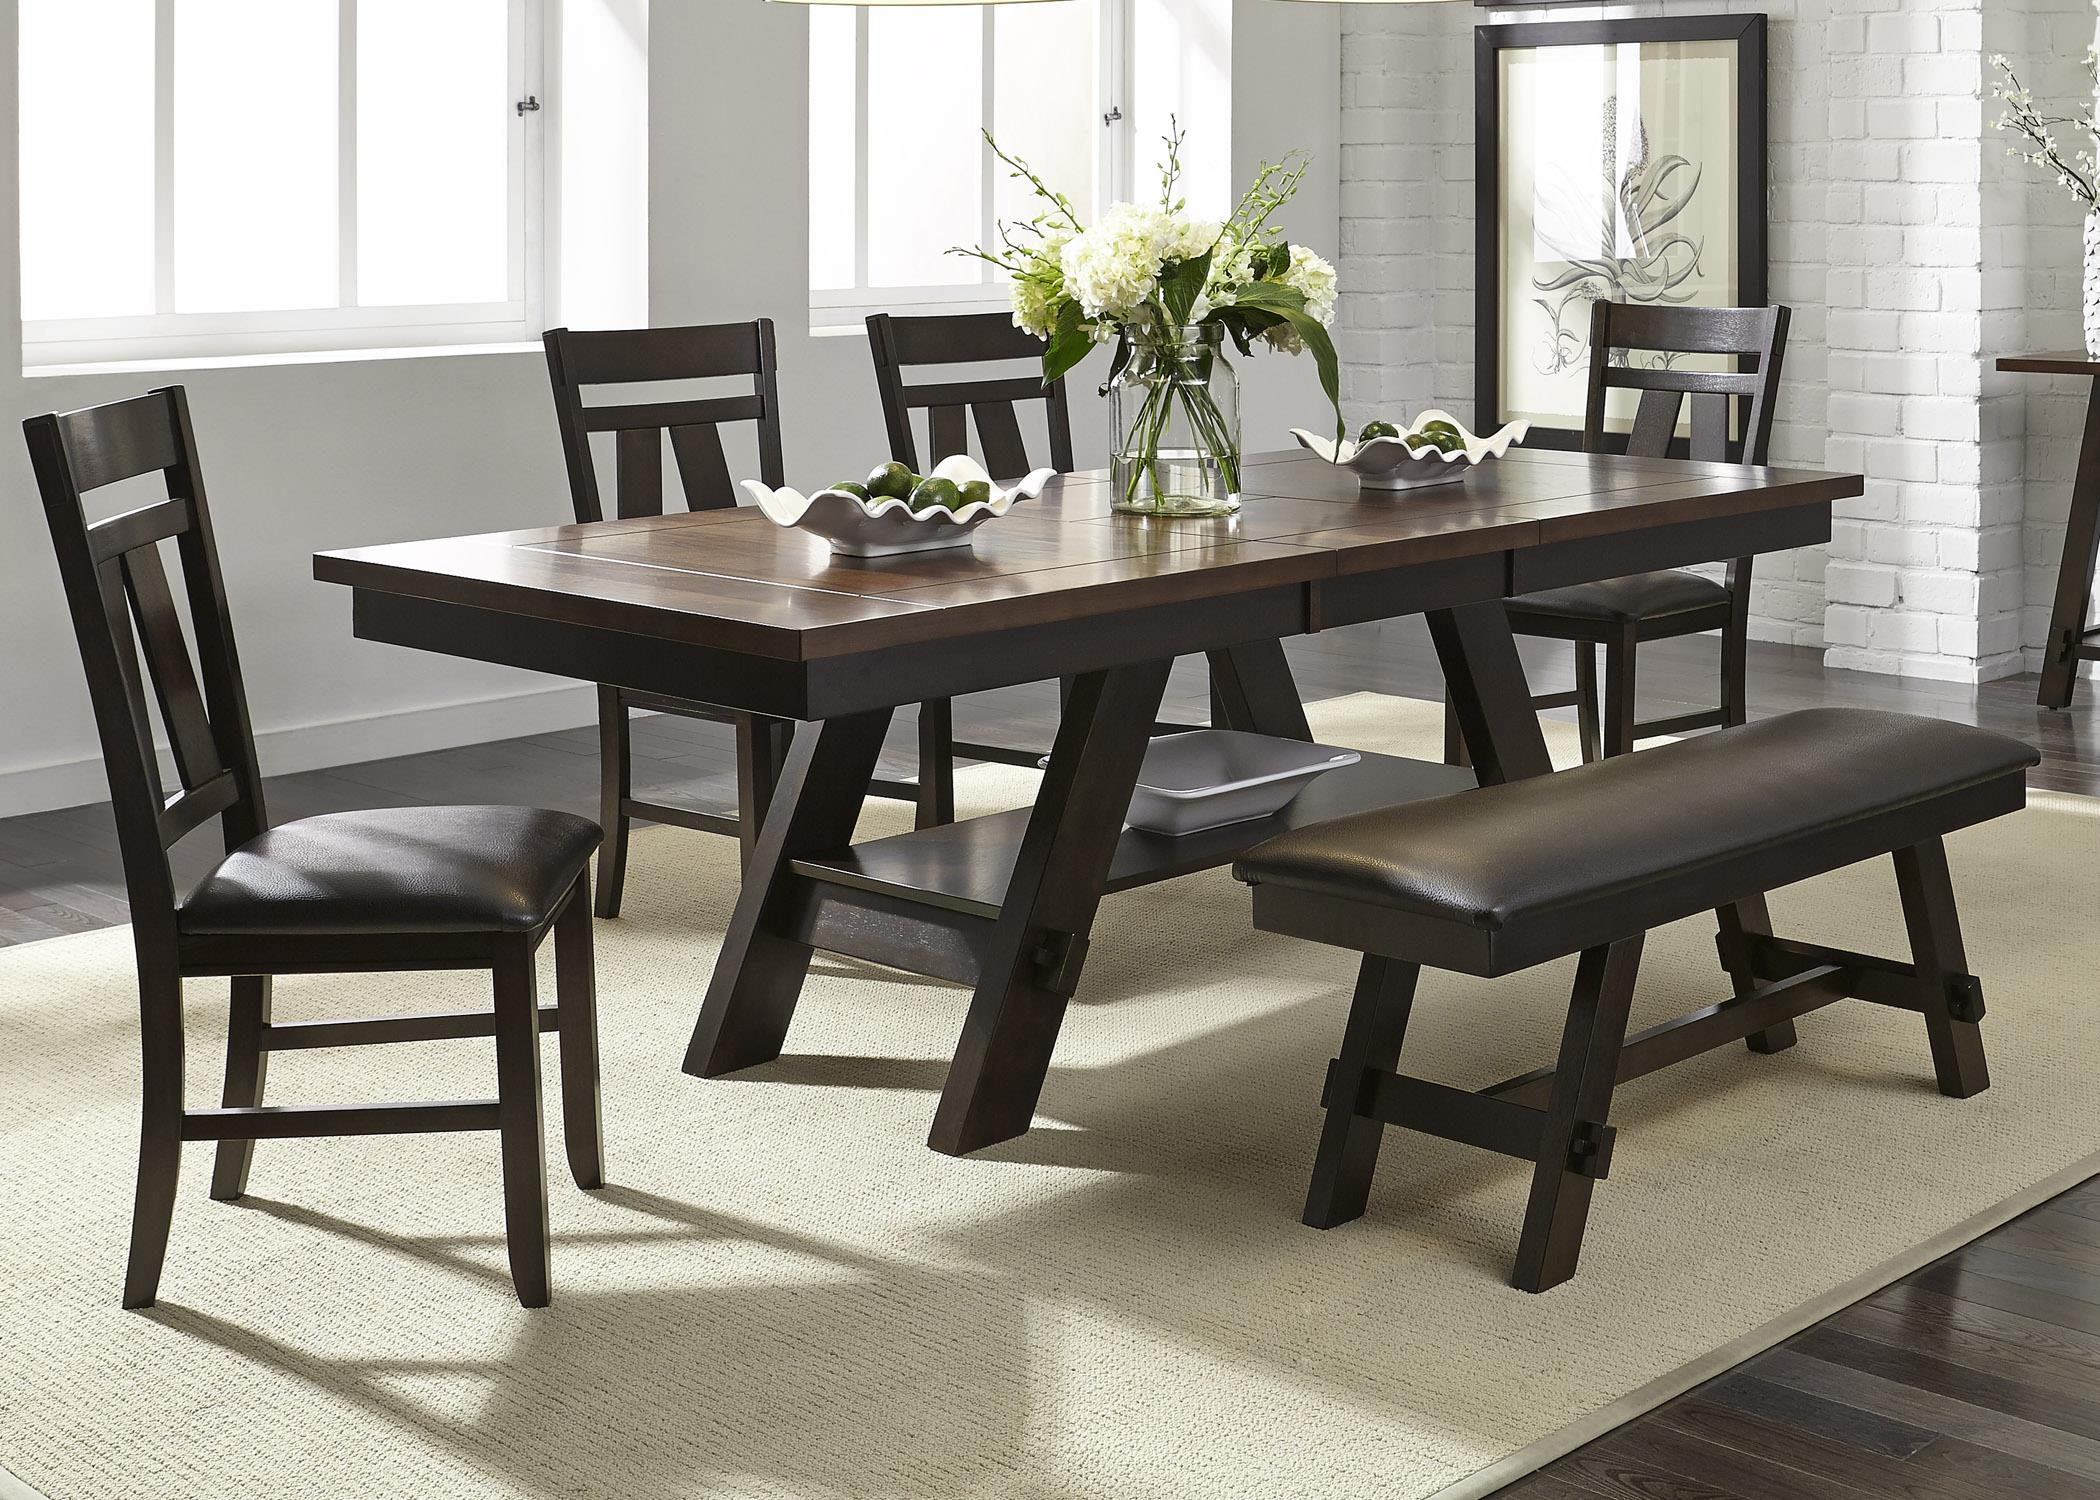 Lawson 6 Piece Rectangular Table Set by Libby at Walker's Furniture